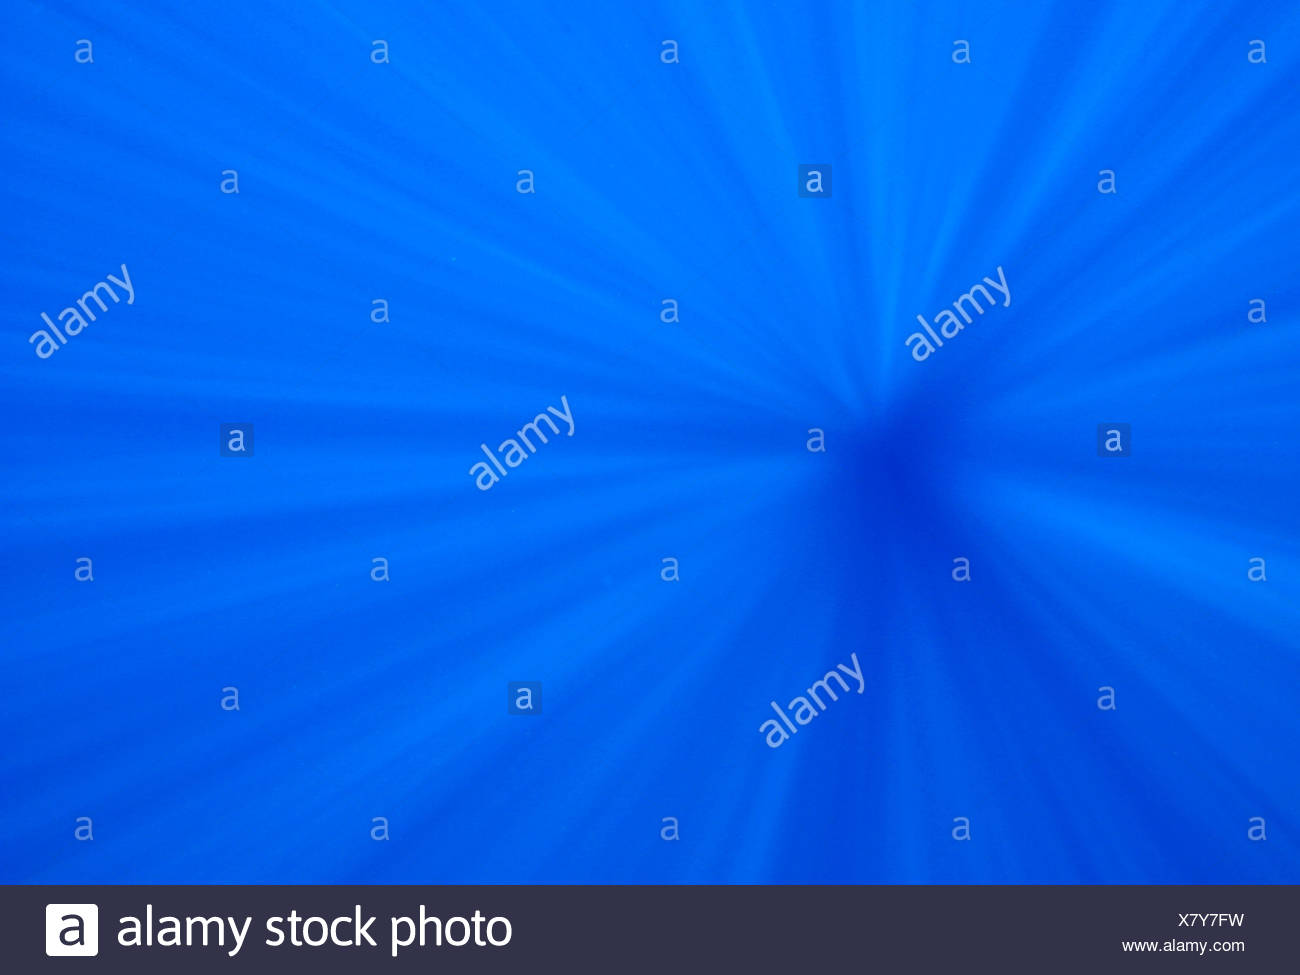 BLUE WATER AND GOD BEAMS OR SUN RAYS - Stock Image